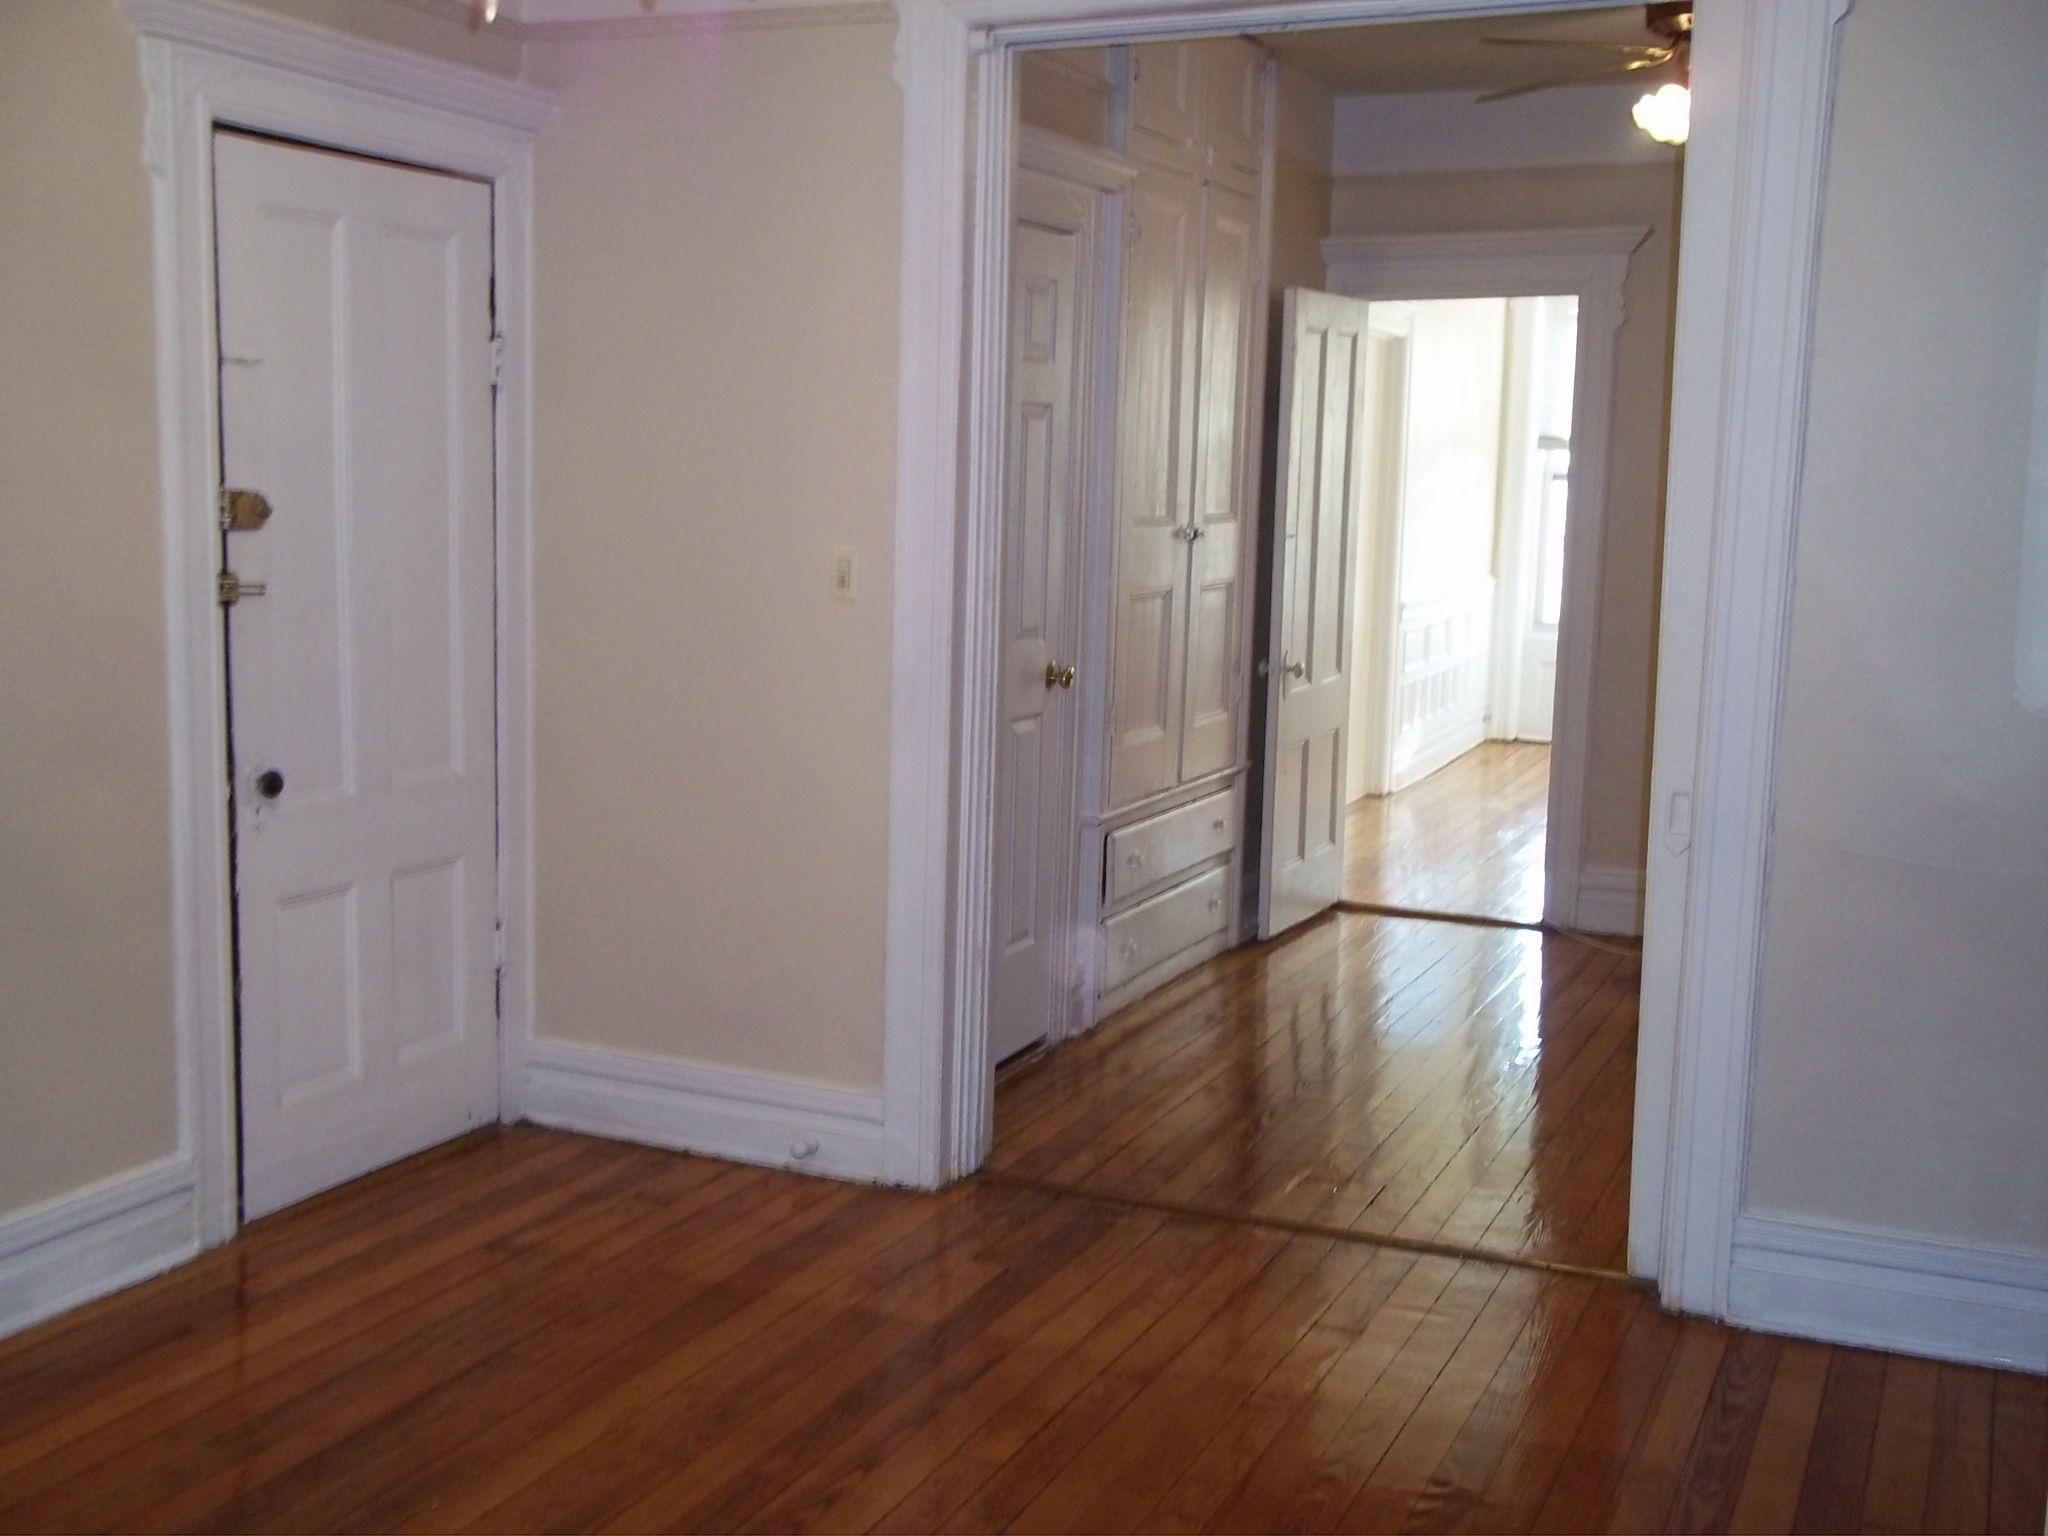 Bedford Stuyvesant 1 Bedroom Apartment For Rent Brooklyn